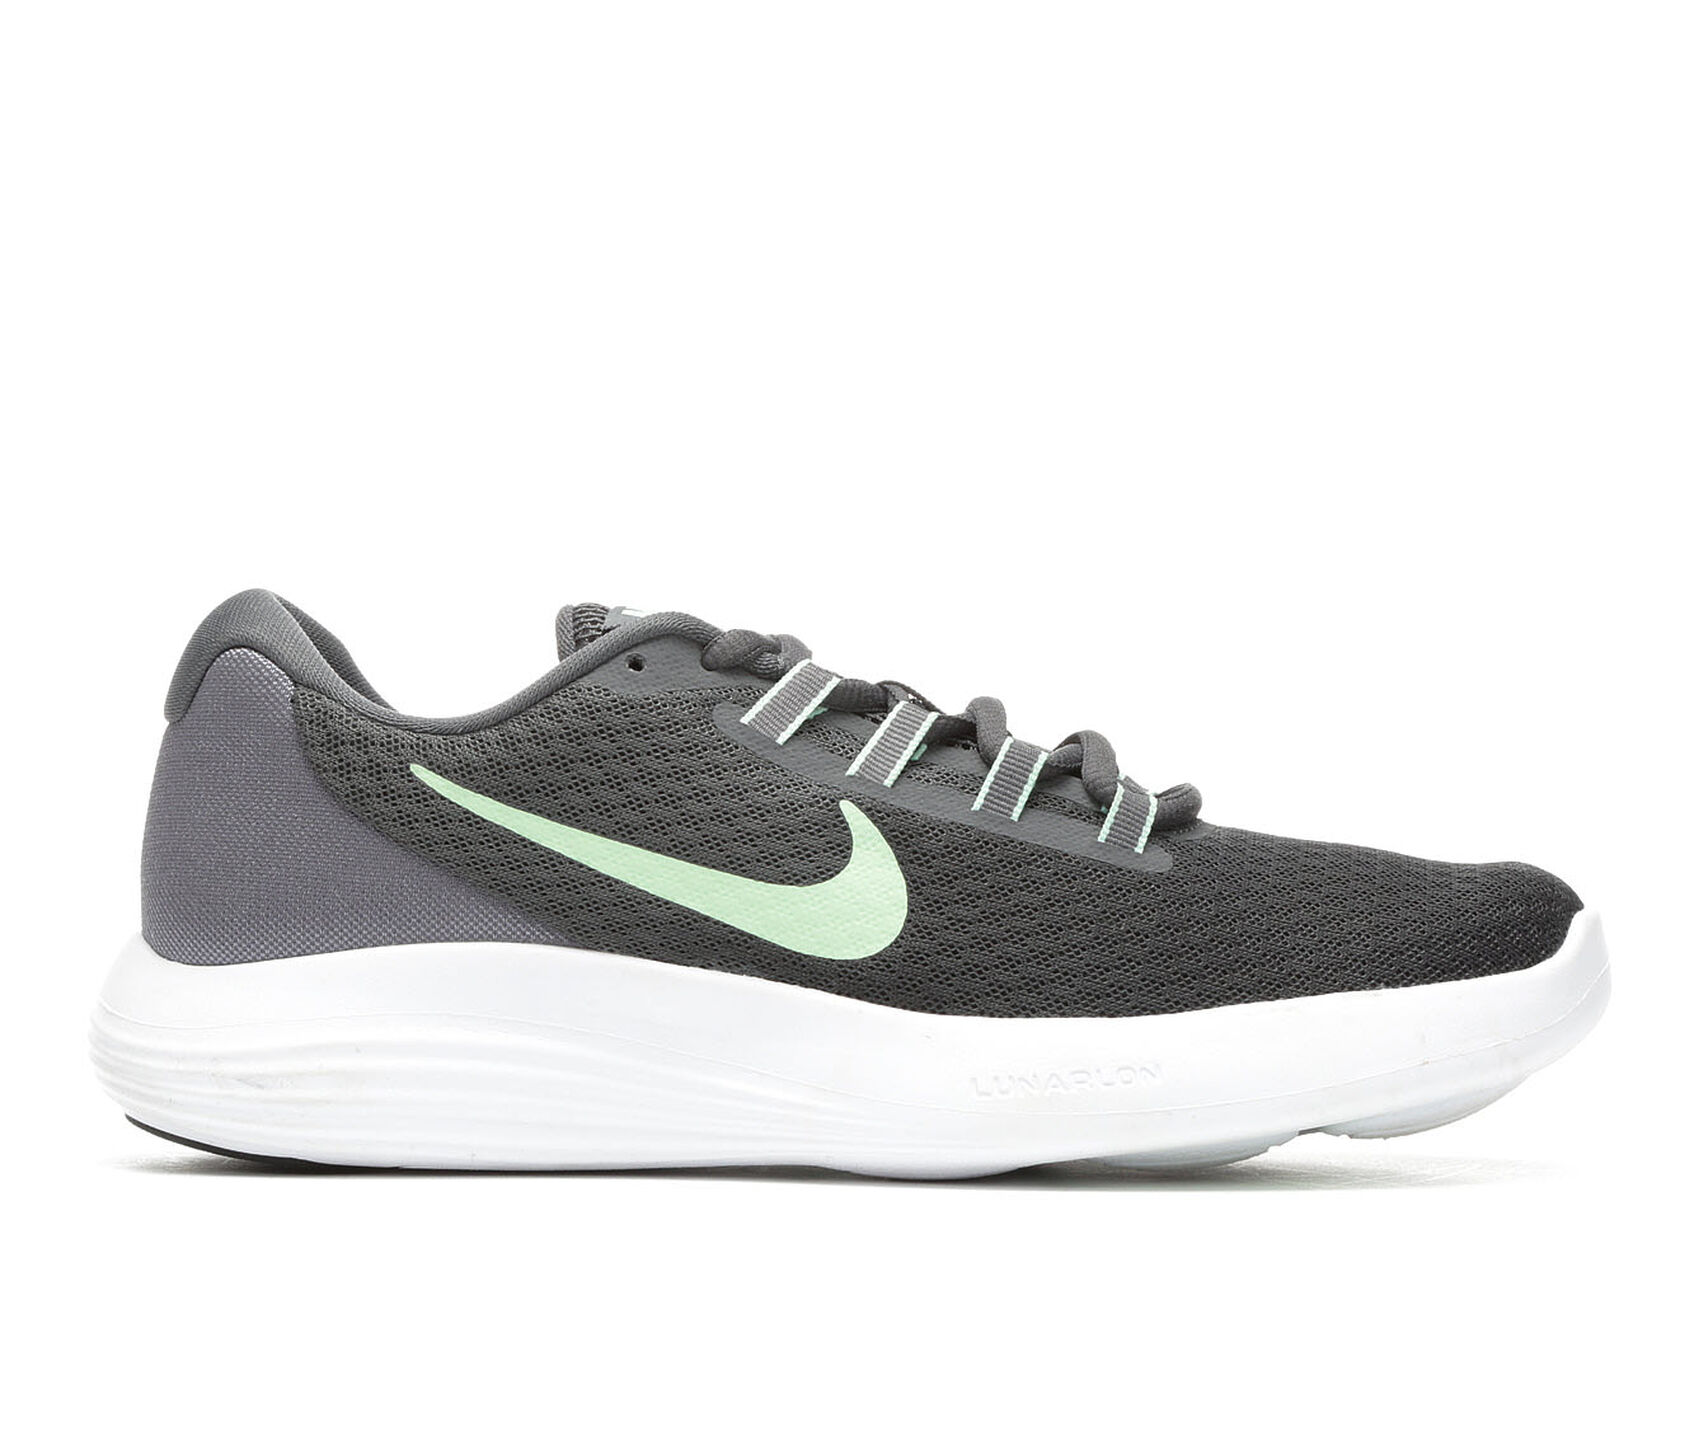 Buy One Get One Half Off Nike Shoes